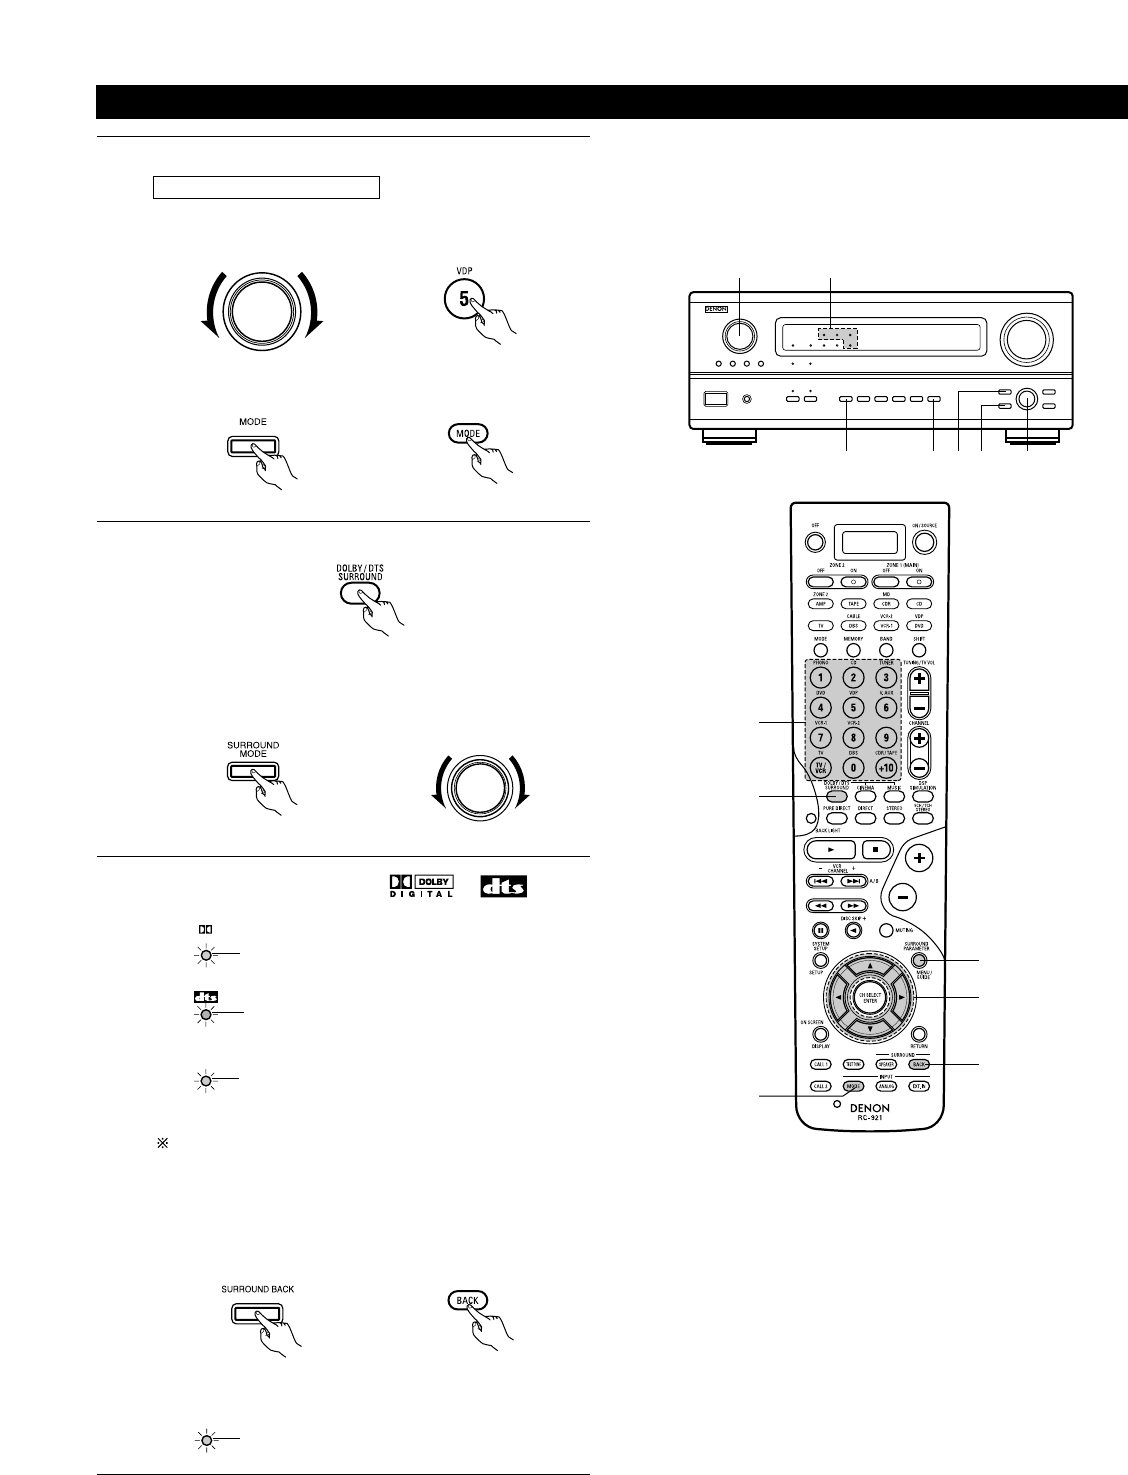 Page 59 of Denon Stereo System AVR-3803 User Guide